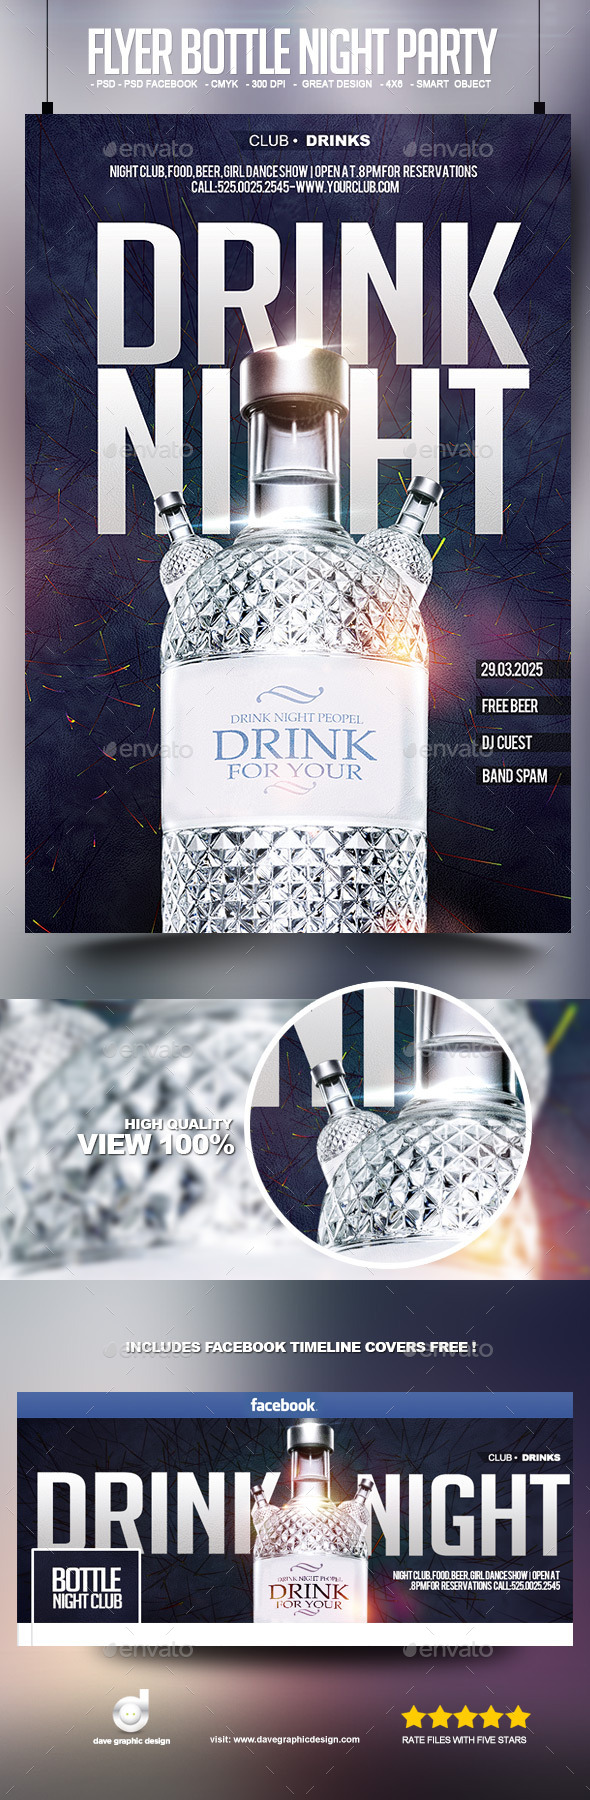 Flyer Bottle Night Party - Clubs & Parties Events